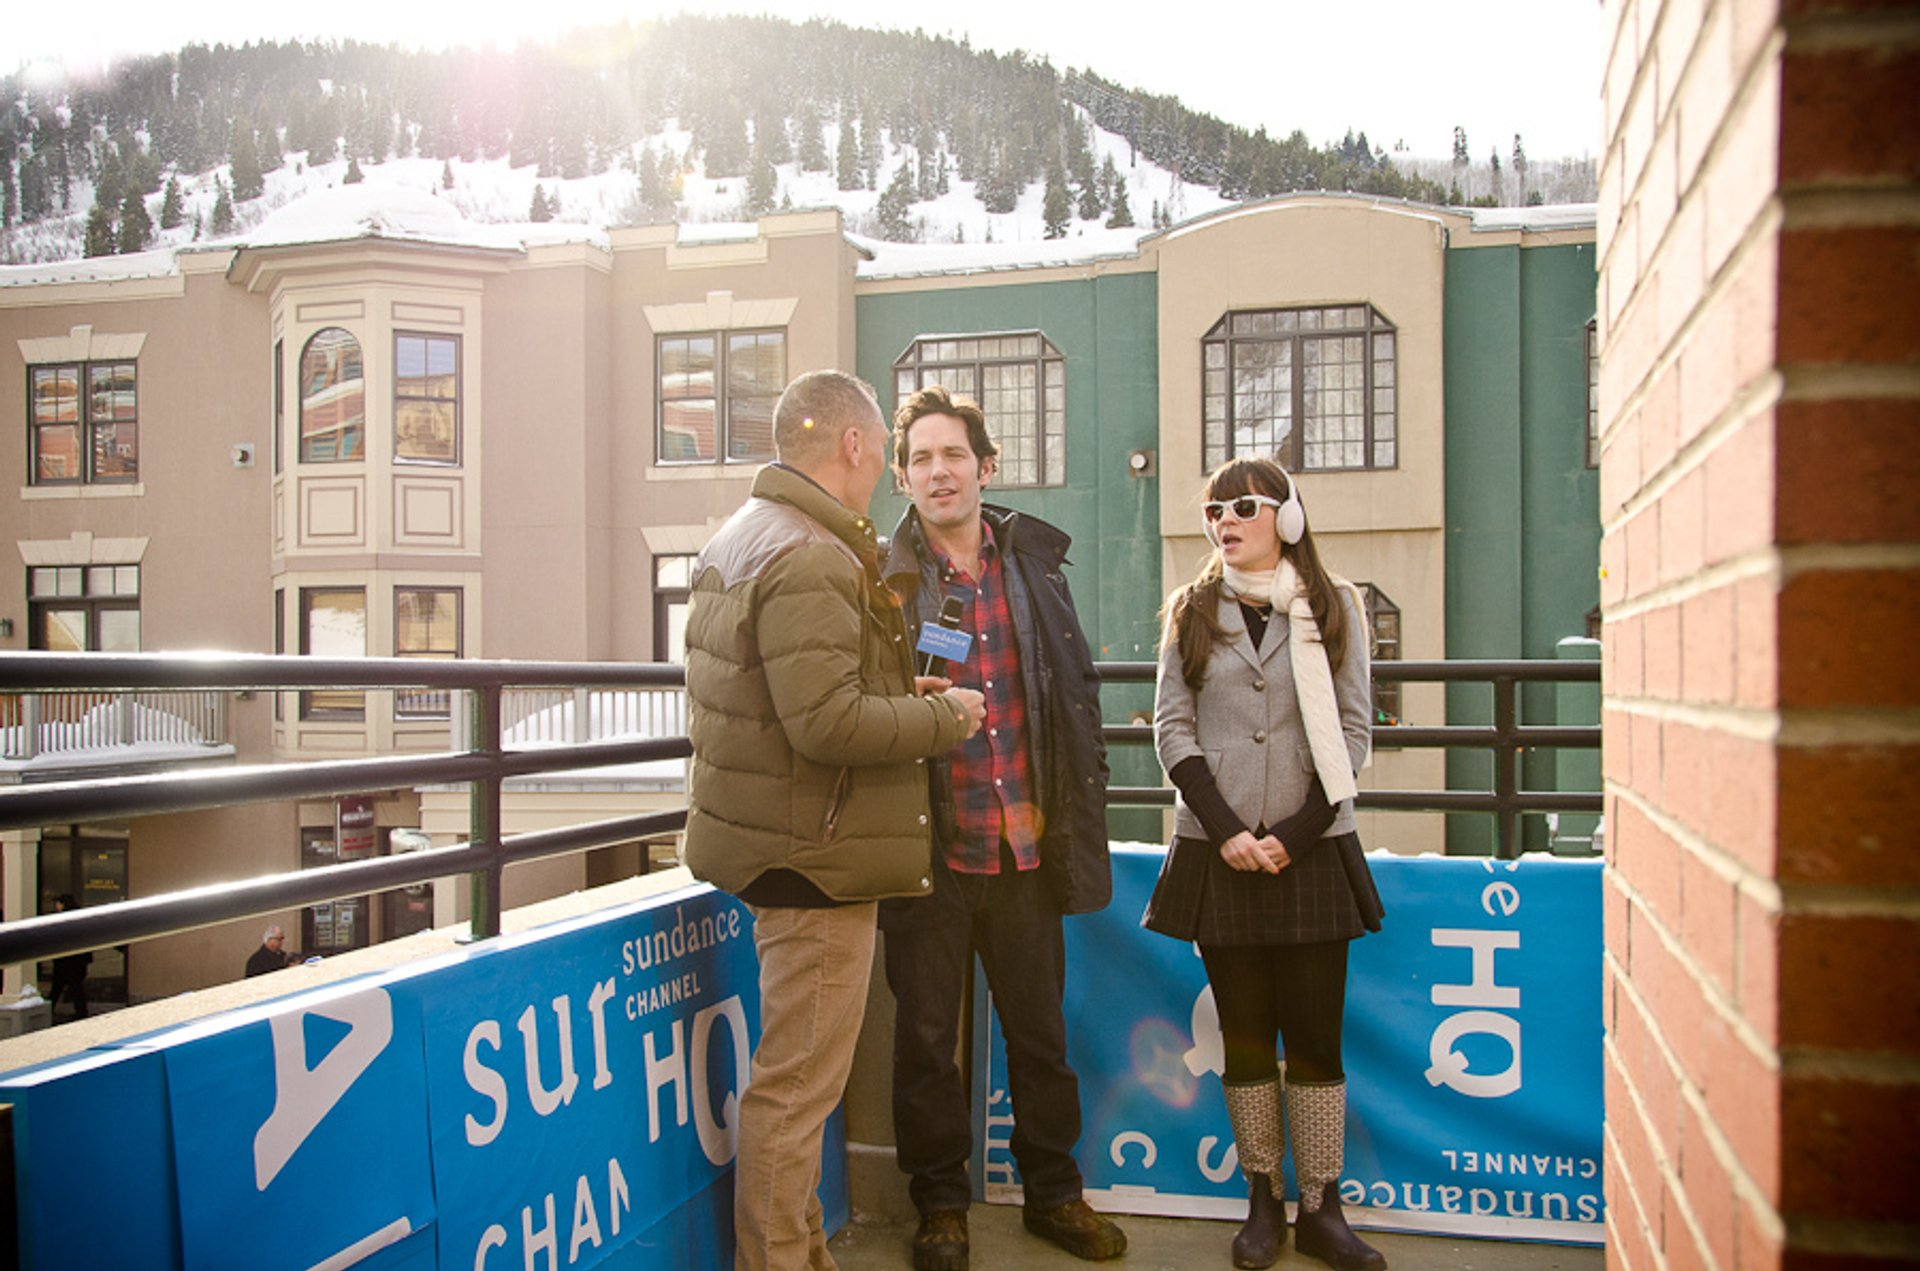 Best time to see Sundance Film Festival in Utah 2019